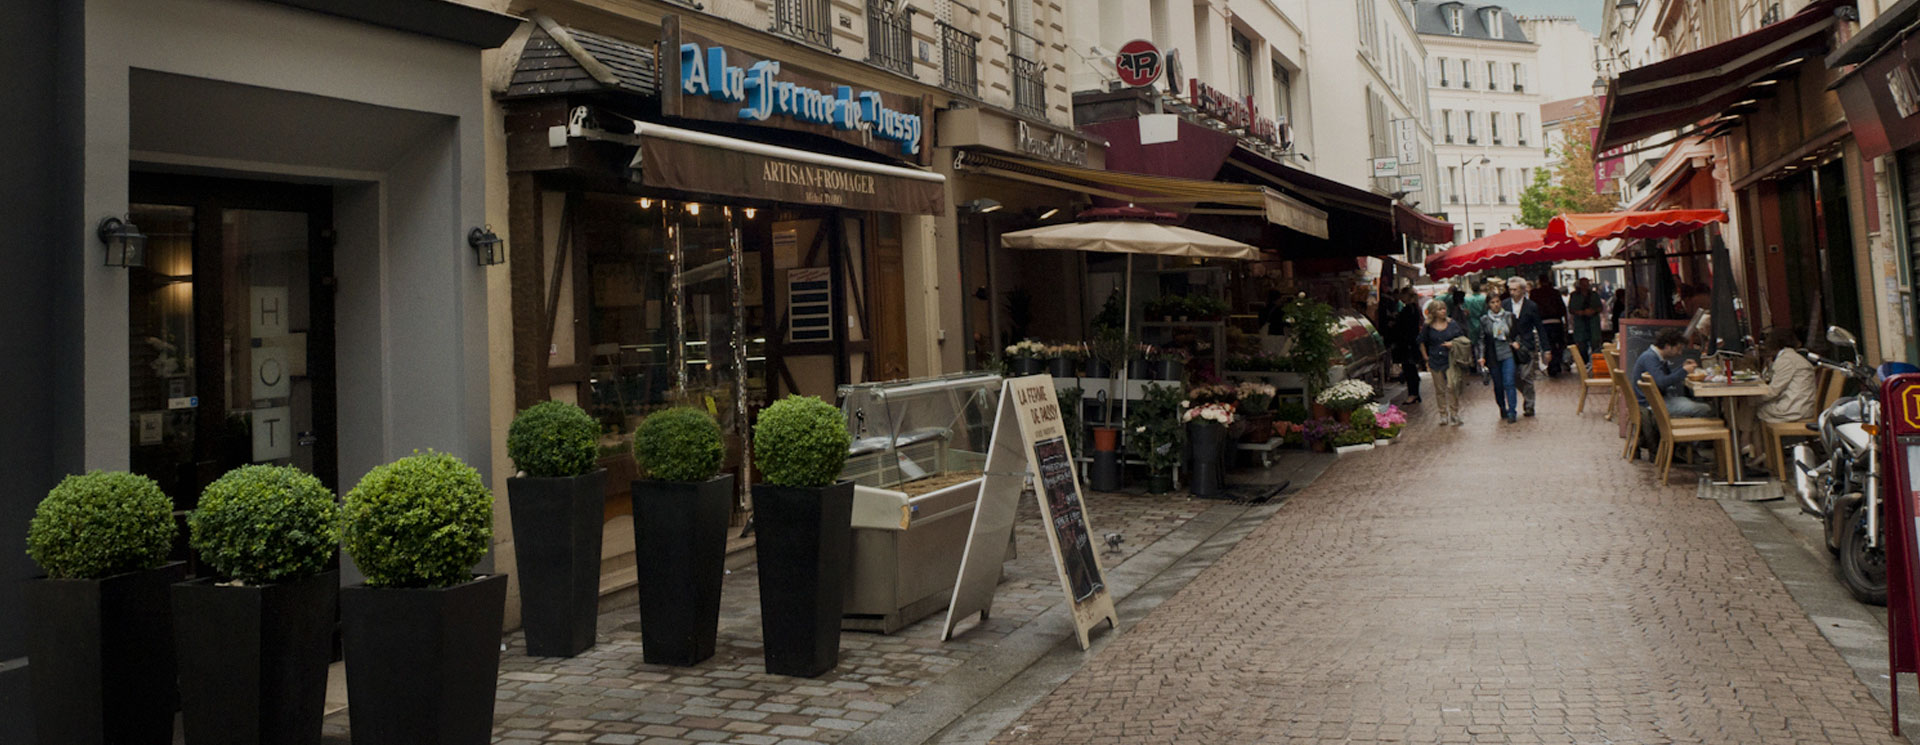 Restaurant Bienvenue La Haut Paris